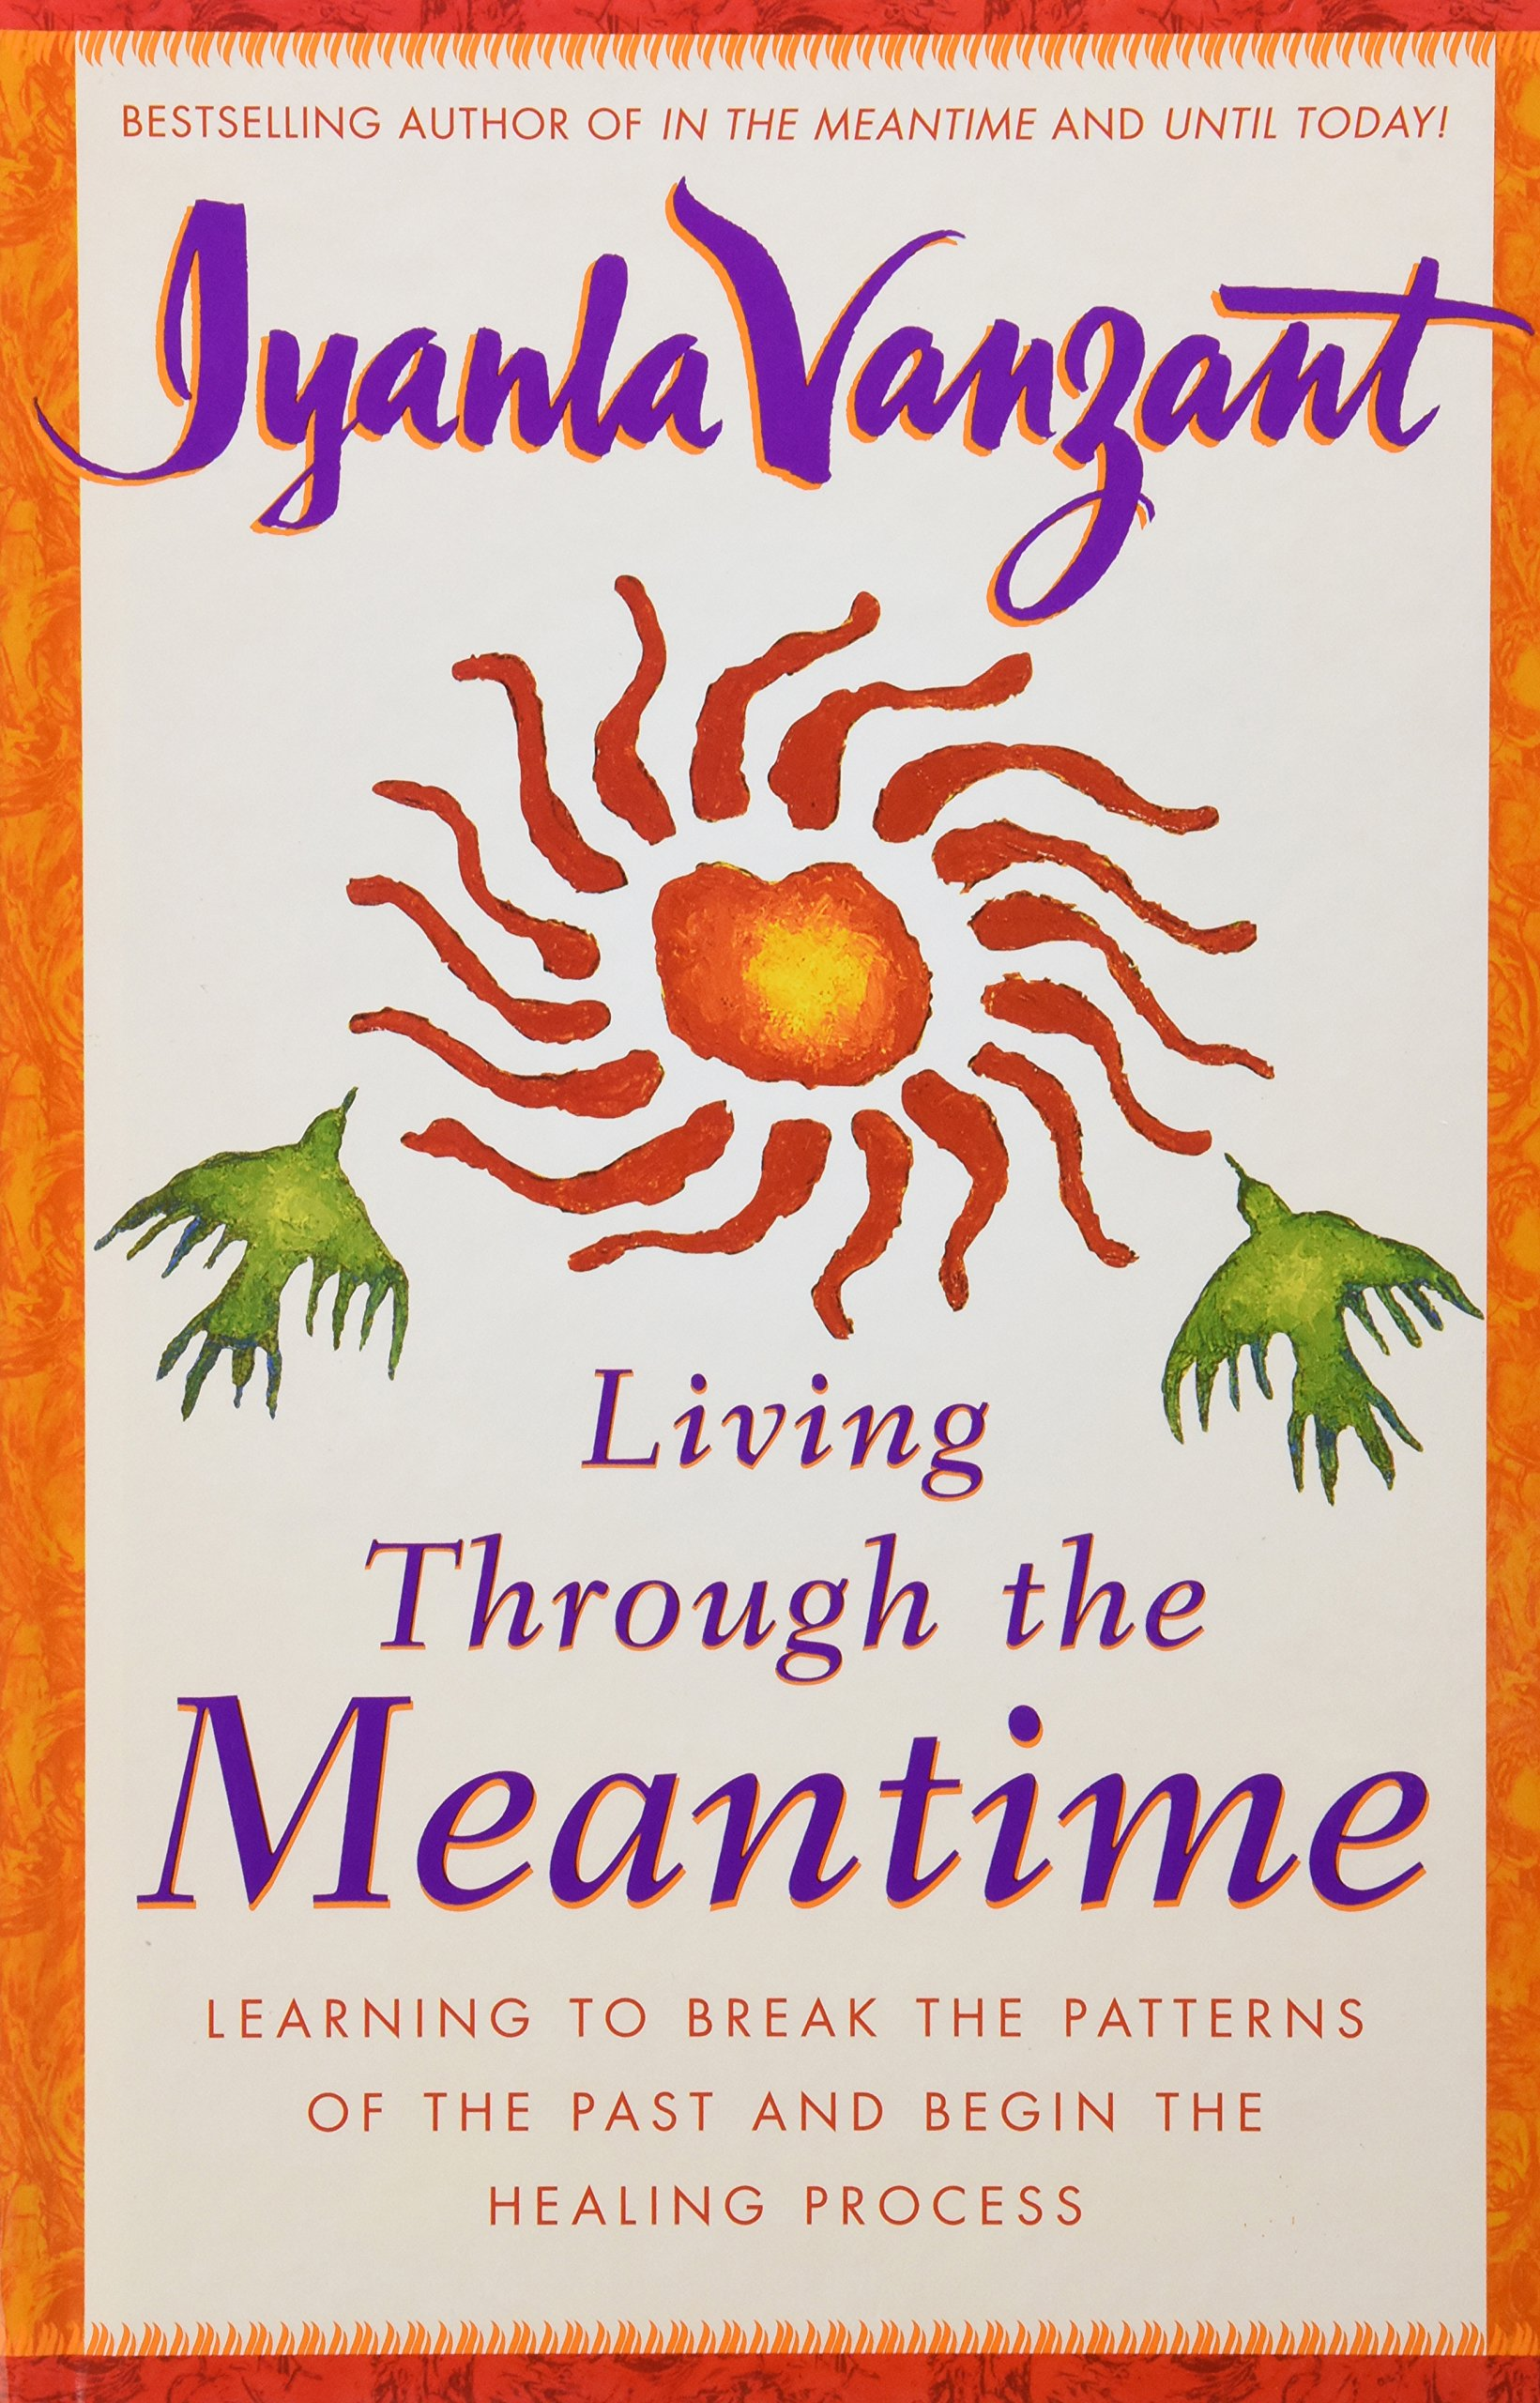 living through the meantime learning to break the patterns of the past and begin the healing process